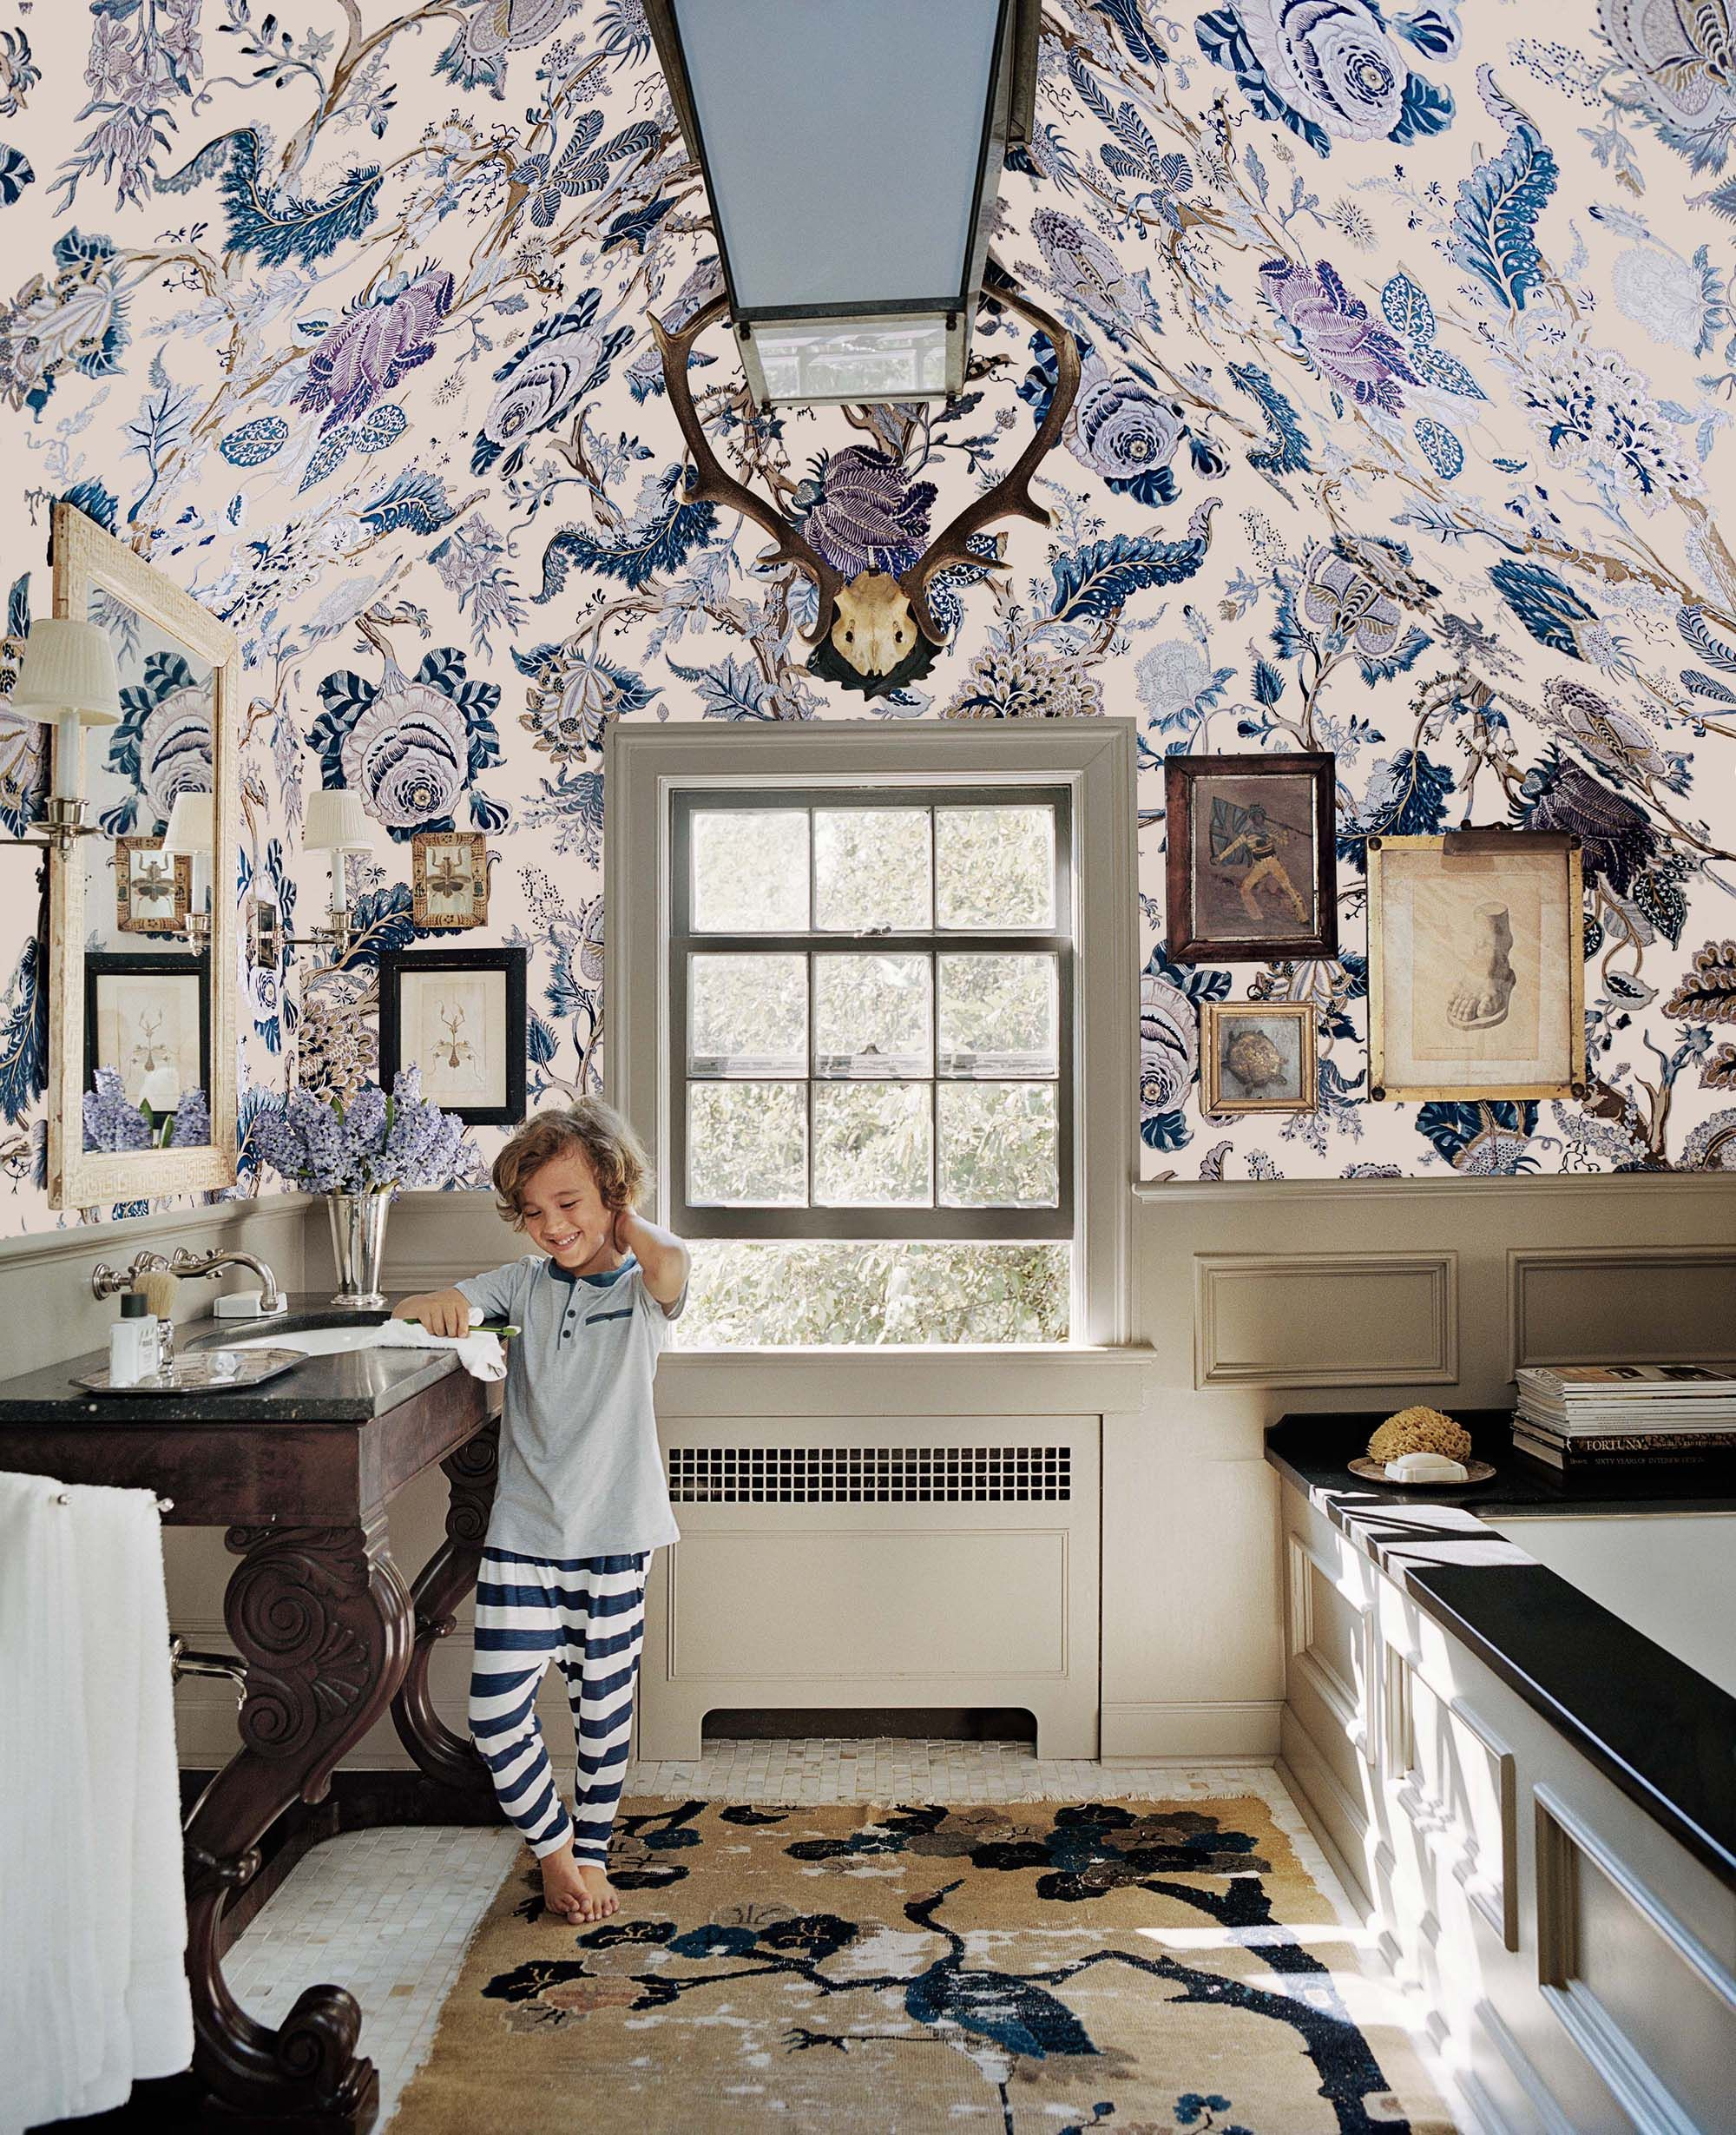 We Re Just A Little Bit Obsessed With Schumacher1889 S Indian Arbre Fabric In Hyacinth With Such A Large Scale Pattern I Home Beautiful Bathrooms Home Decor